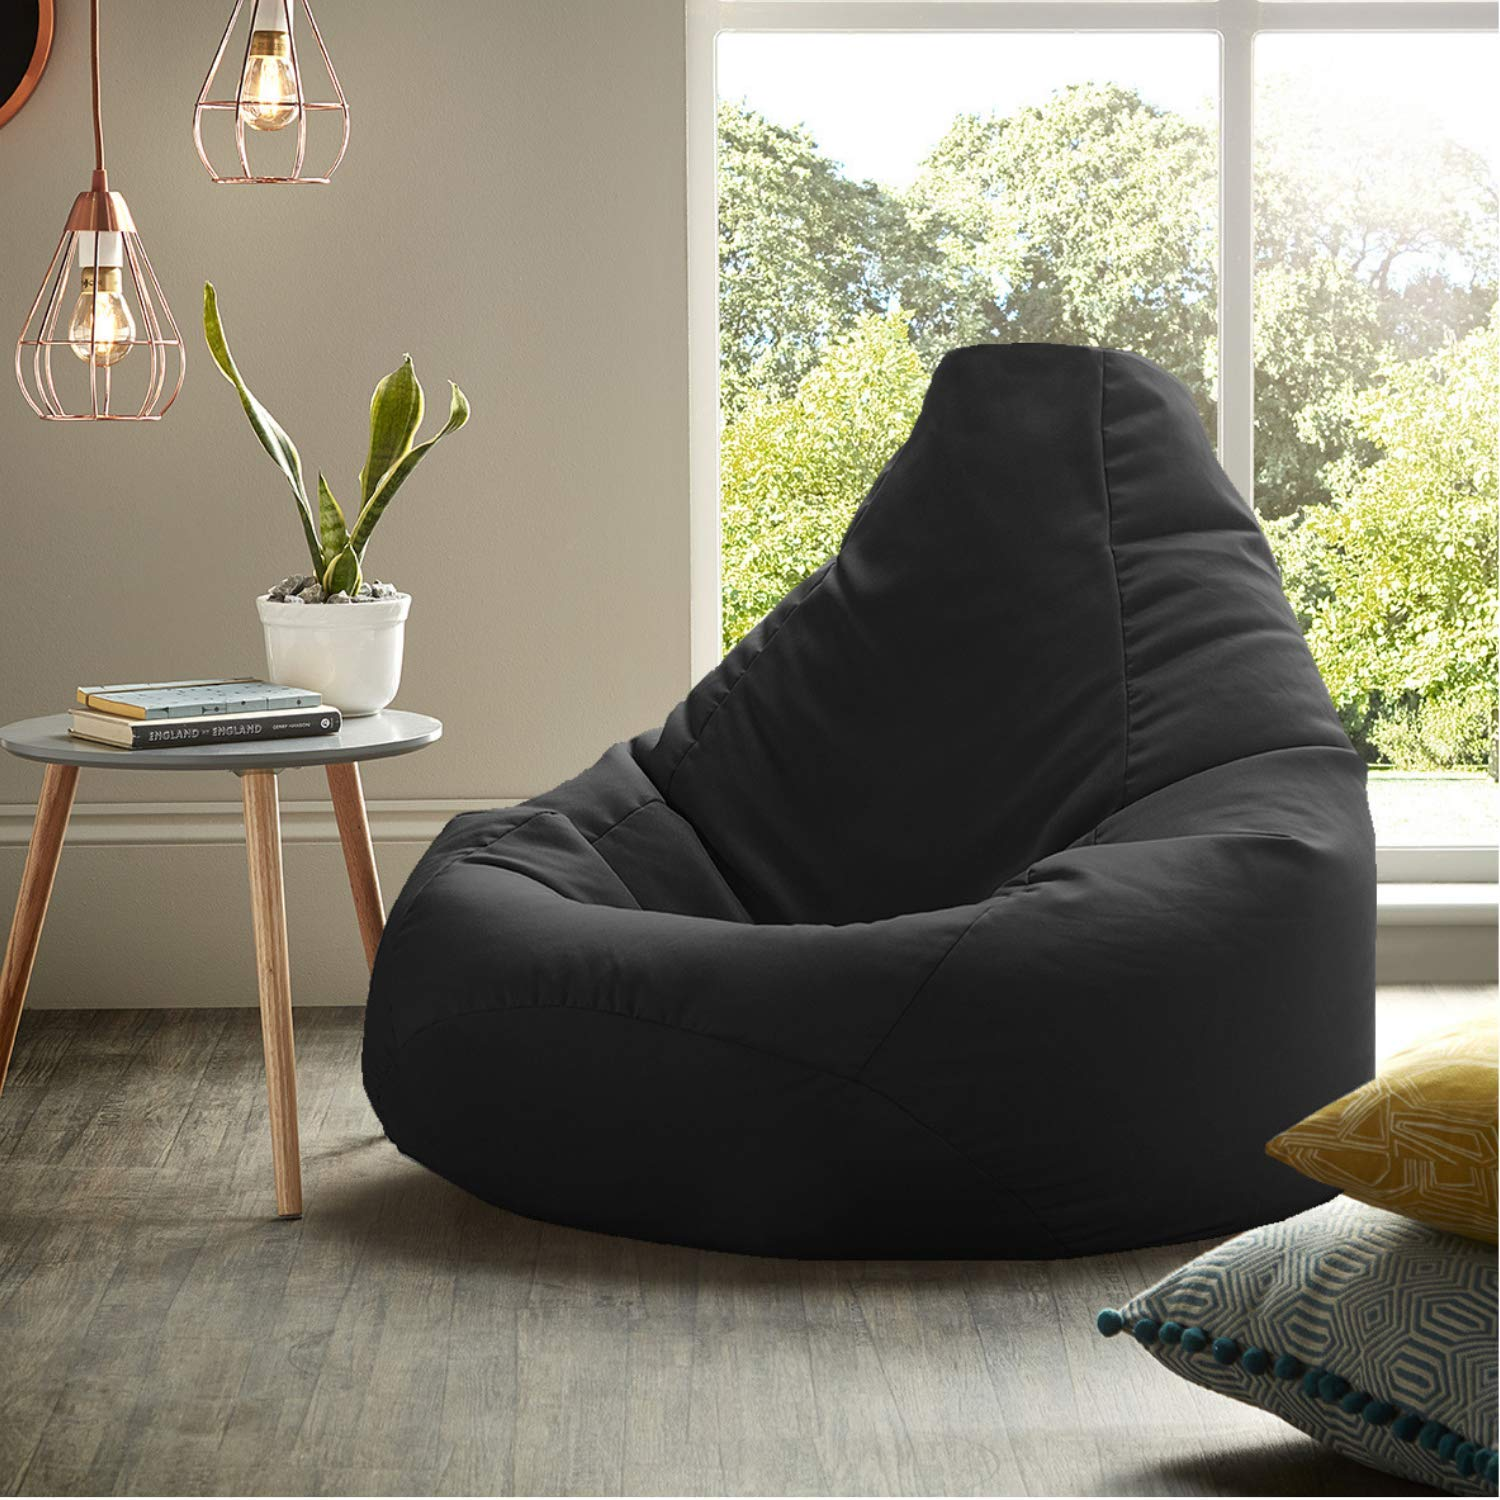 Ink Craft Bean Bag Chair Cover Without Beans For Bedroom Living Room Office Home 30 1 X 28 6 X 2 8 Cm Black Xl Amazon In Electronics